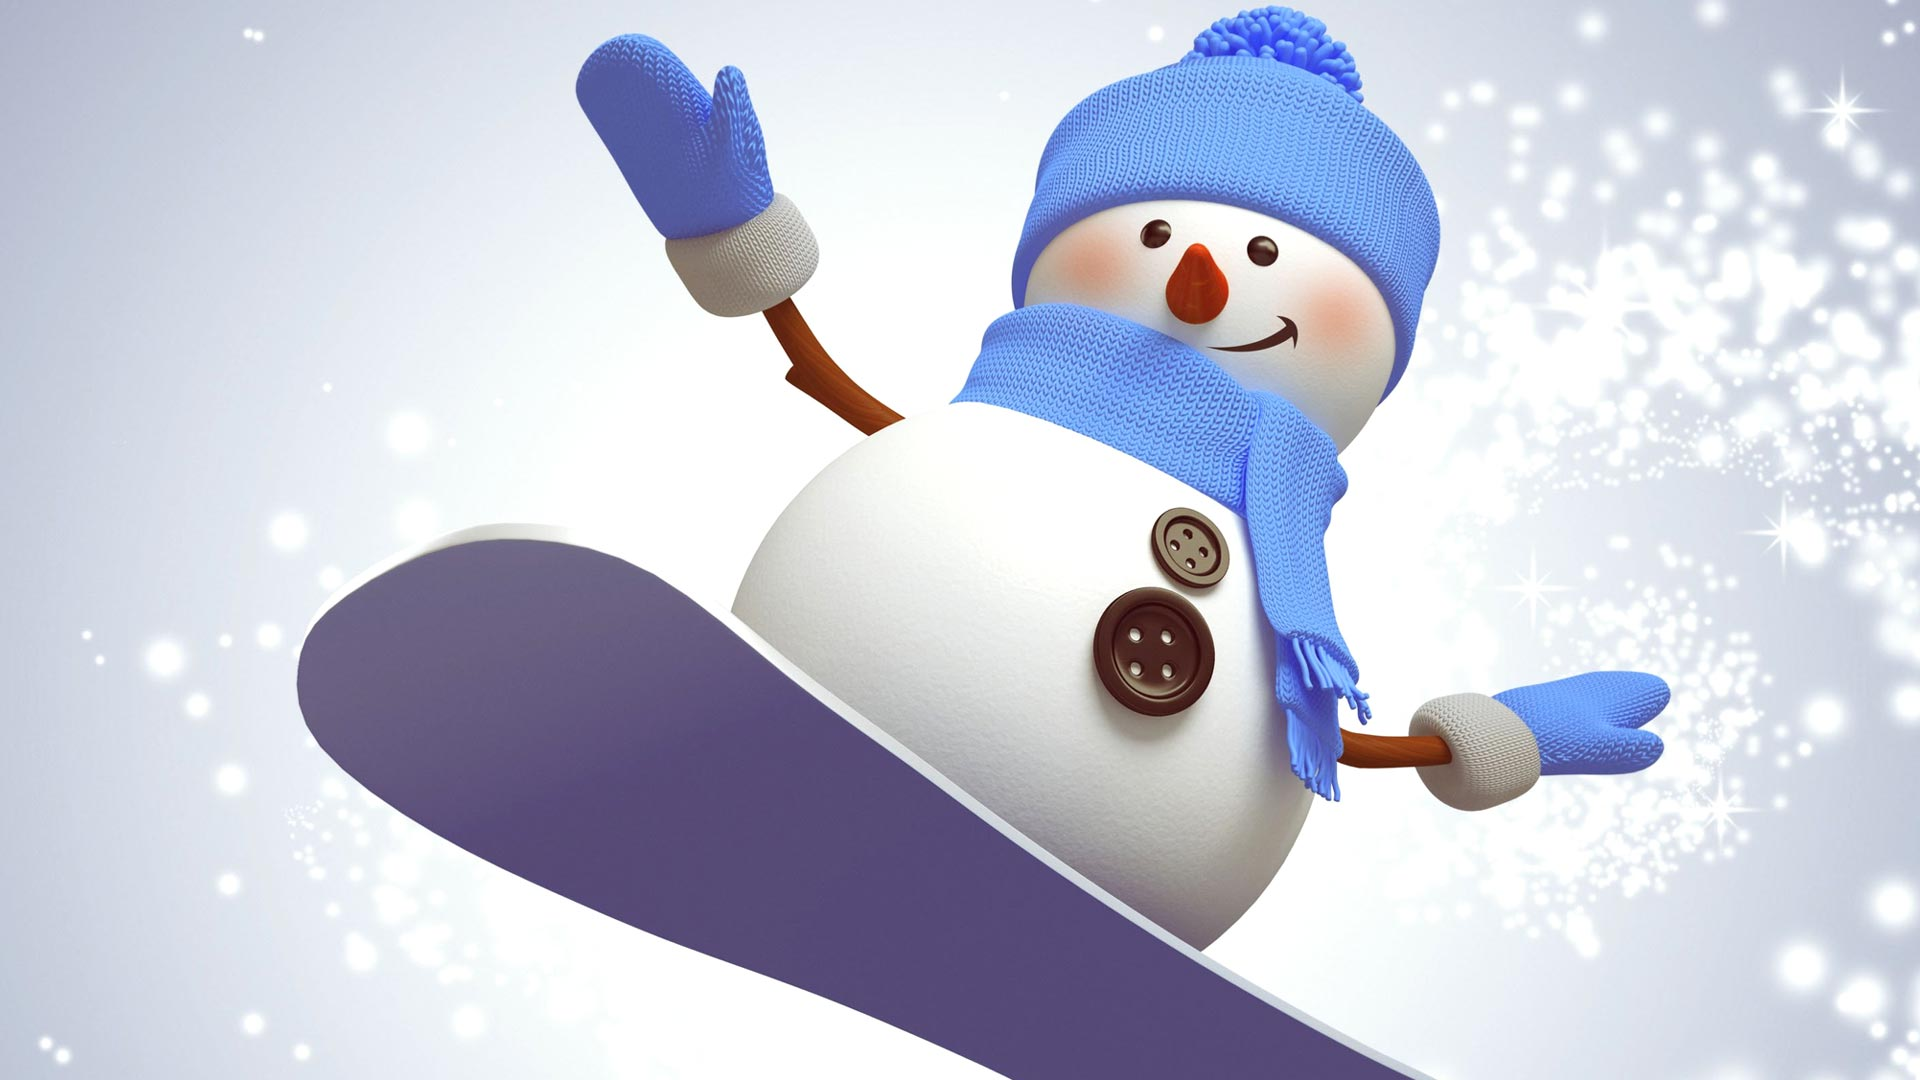 Cute Cartoon Hd Wallpaper Free Download 21 Hd Snowman Wallpapers